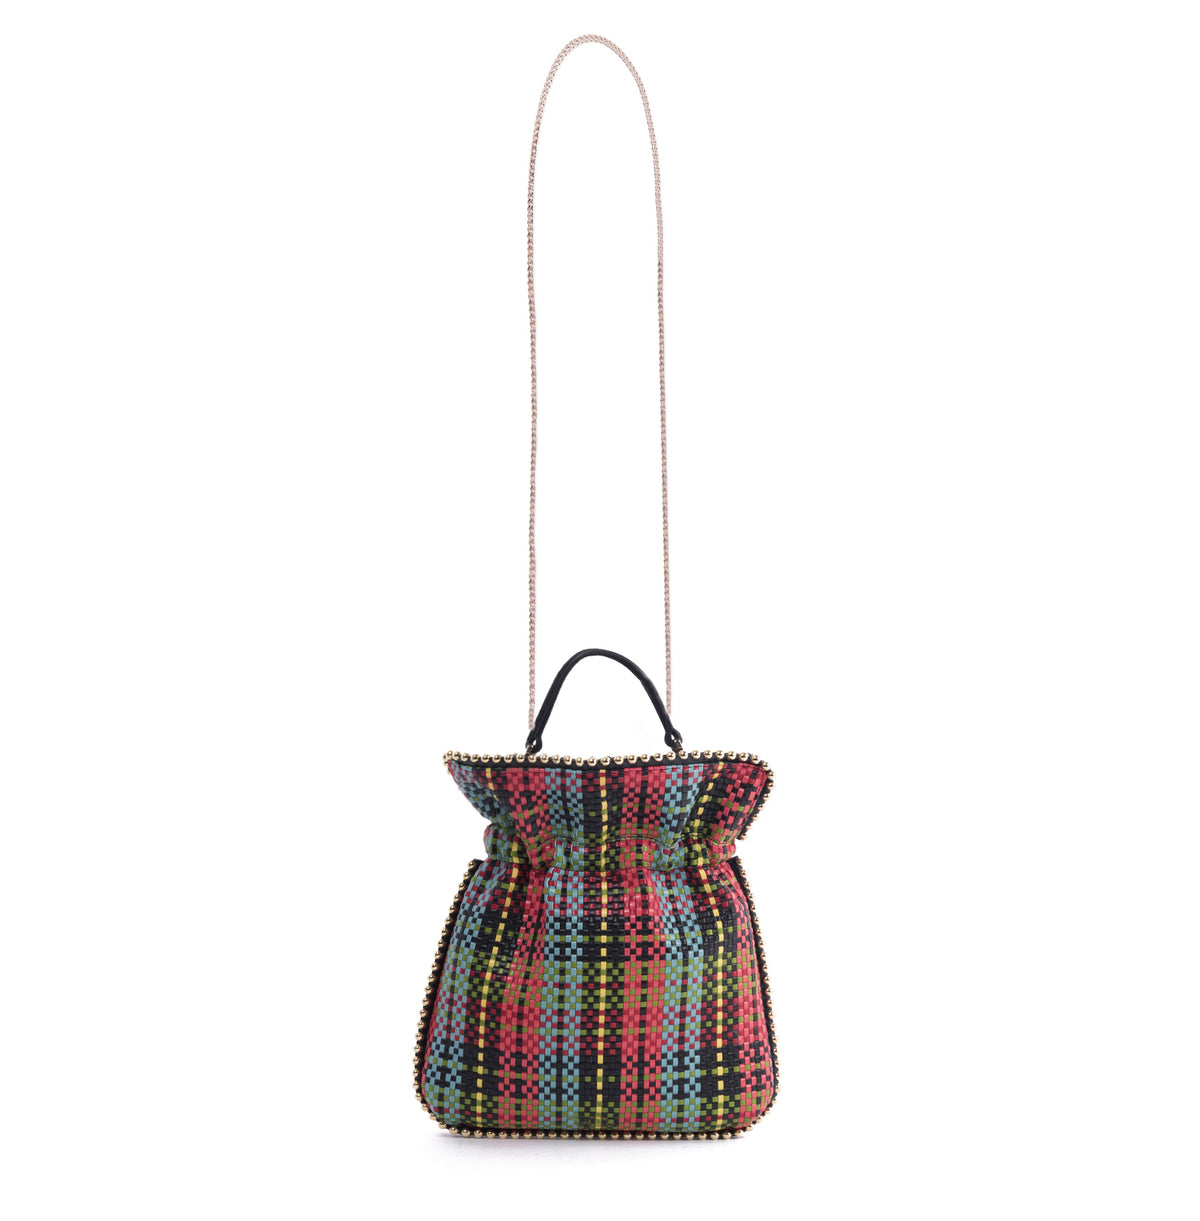 TRILLY METAL PIPING WOVEN TARTAN